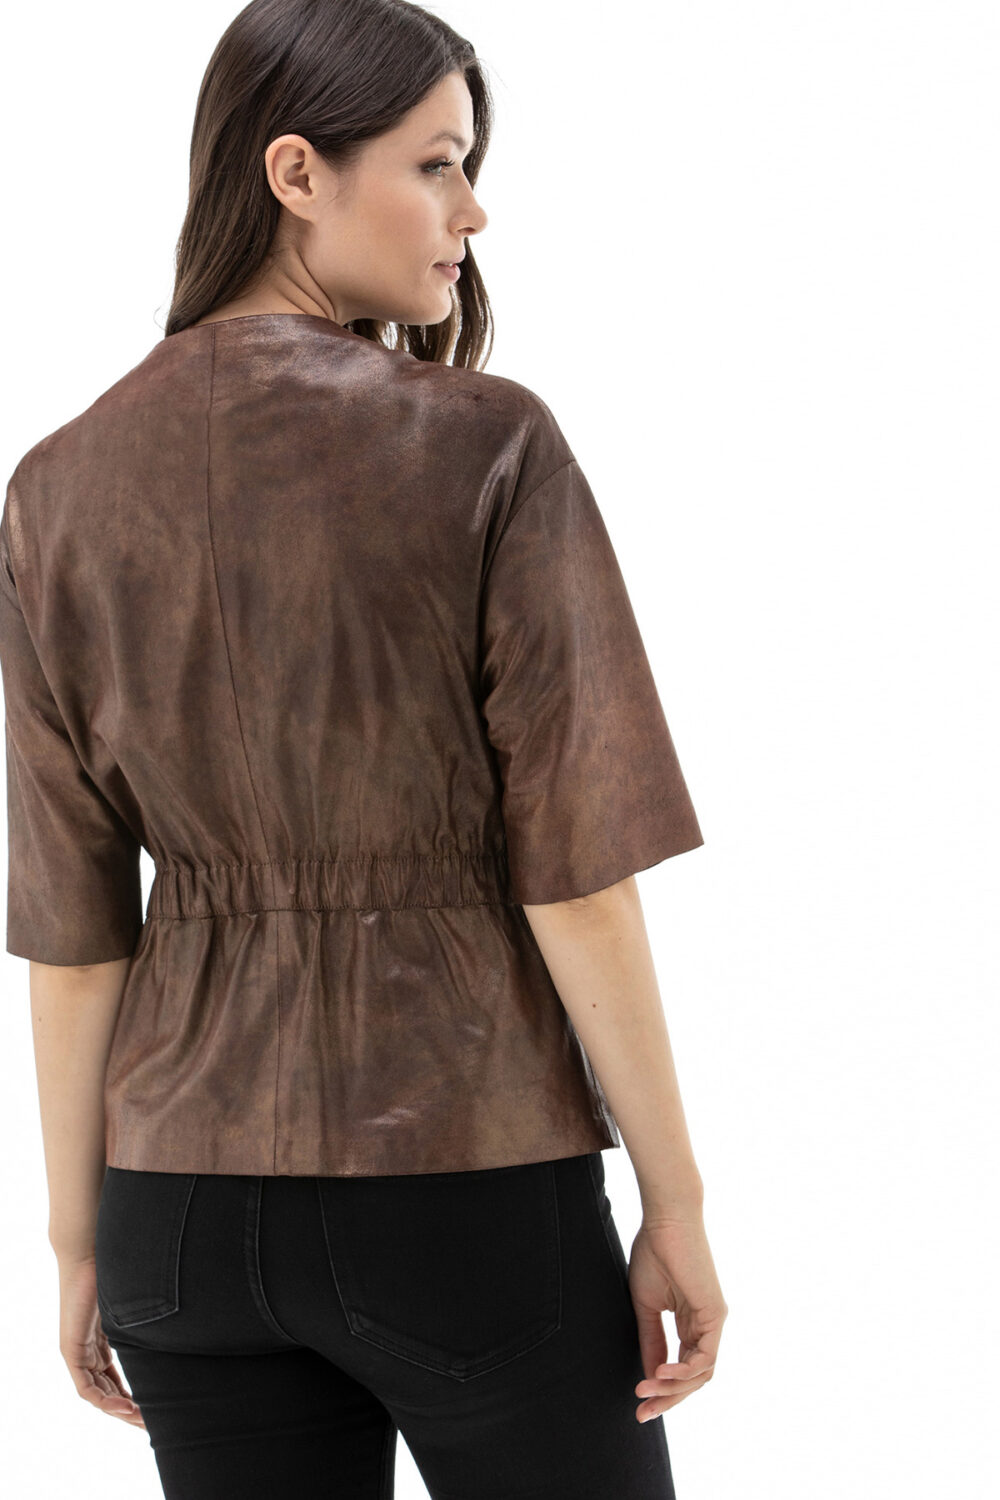 Chocolate Brown Leather Jacket Womens